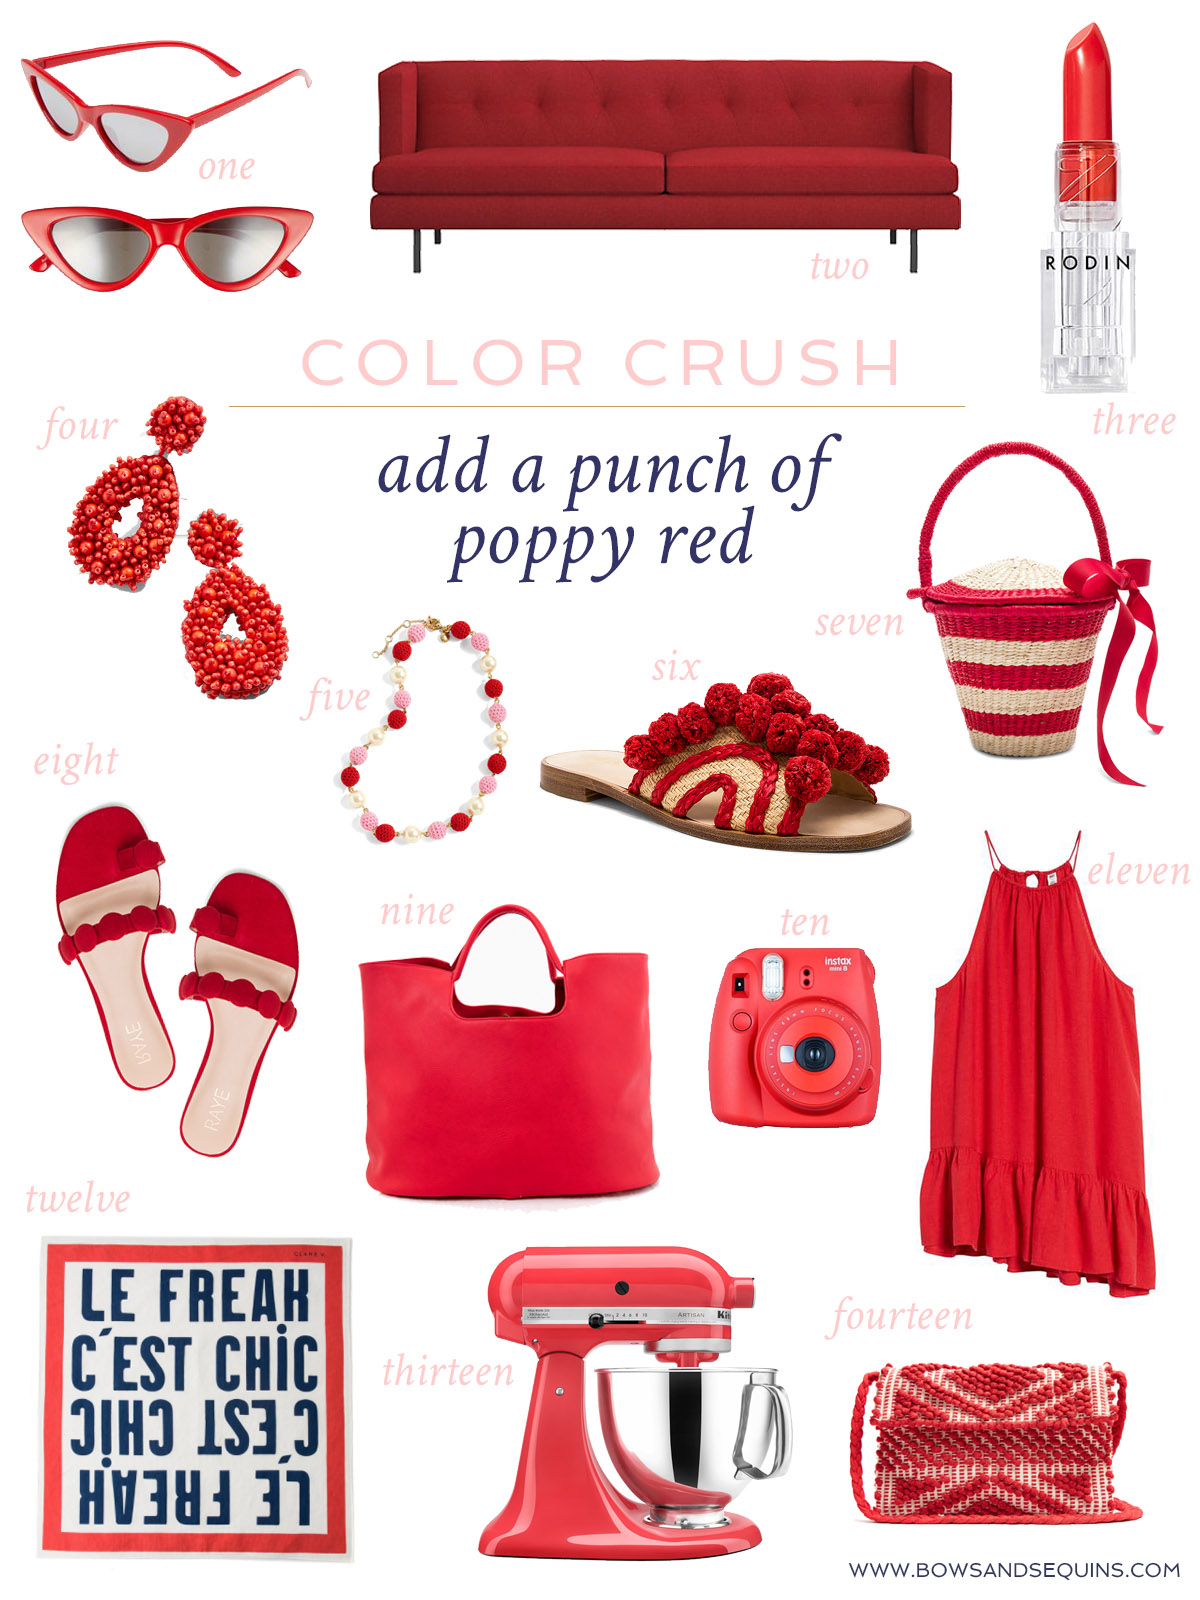 Jessica Sturdy shares her favorite poppy red accessories for spring and summer across a variety of verticals: beauty, home, style, kitchen, and fashion.